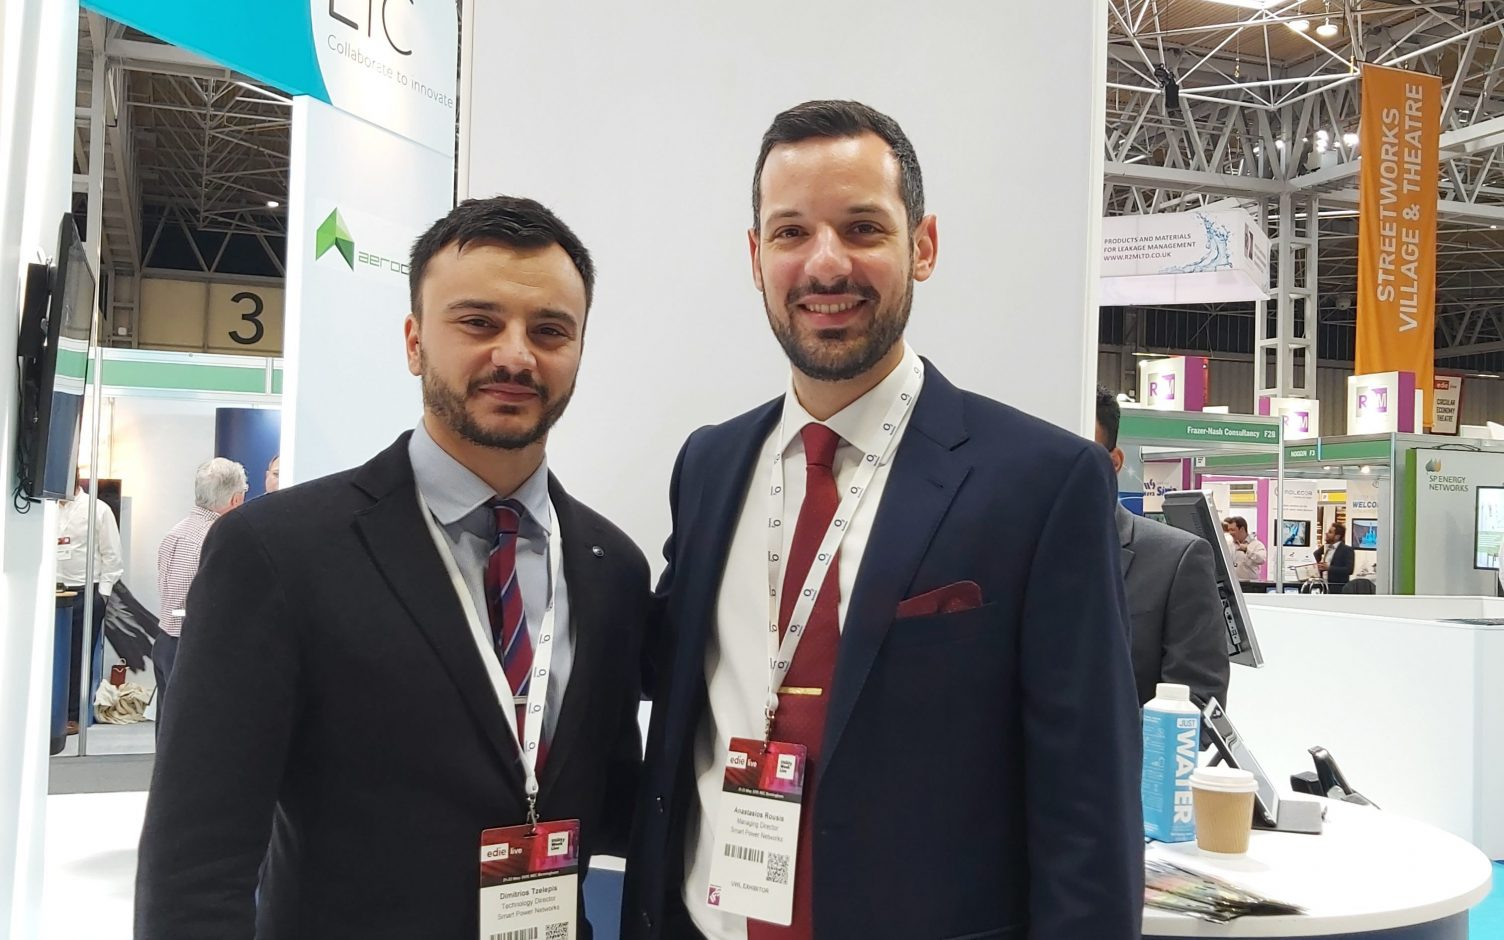 Anastasios Oulis Rousis, CEO and co-founder (right). Image: Smart Power Networks.